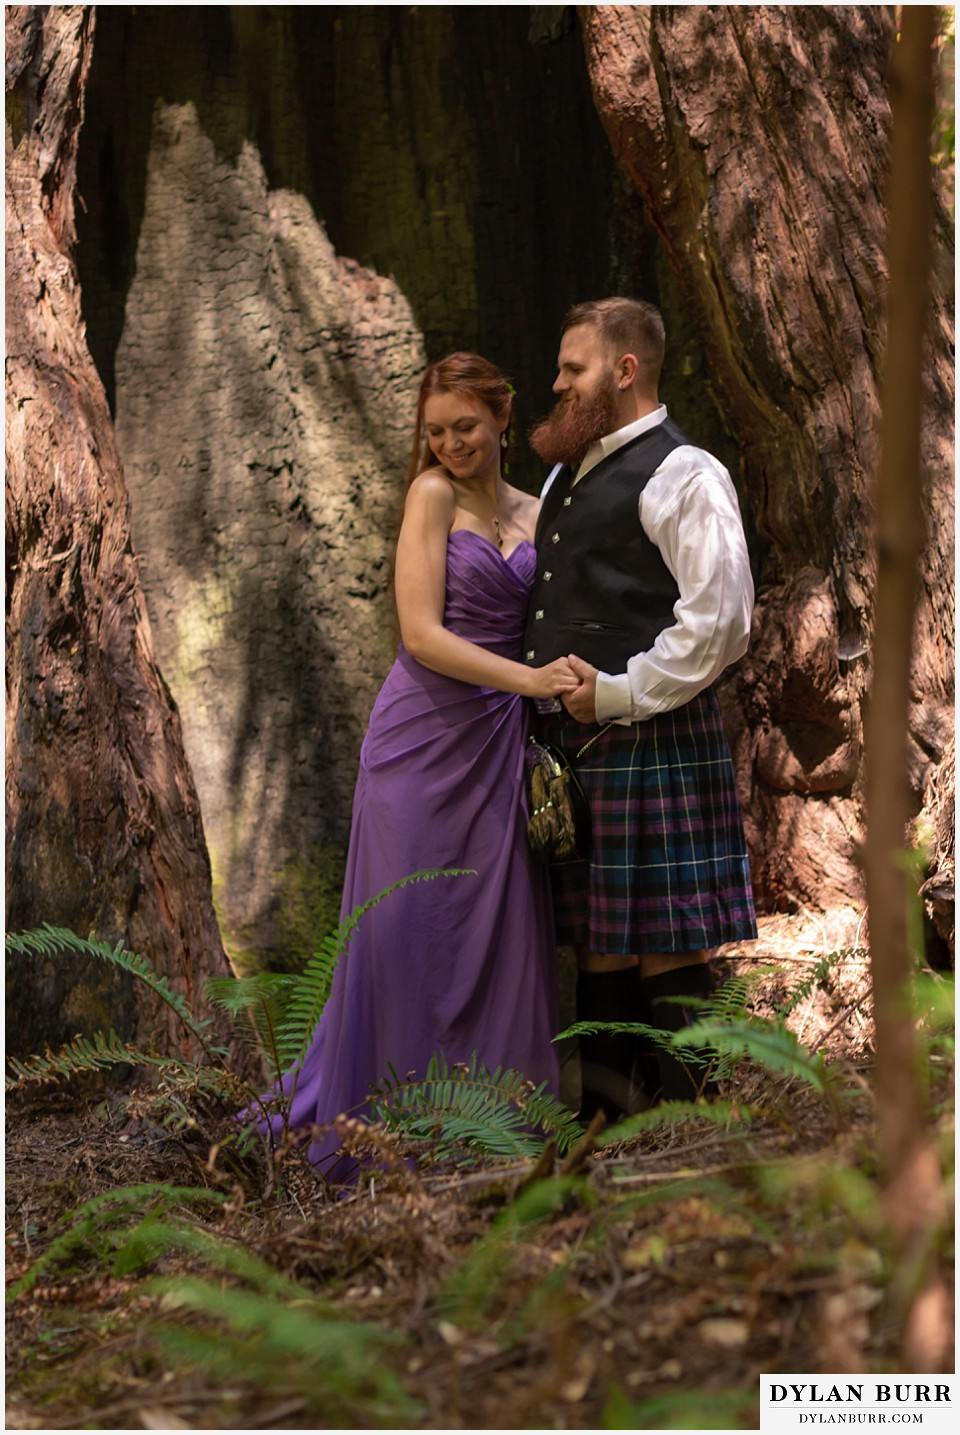 redwood forest wedding elopement avenue of the giants california cute maid of honor and scottish best man together